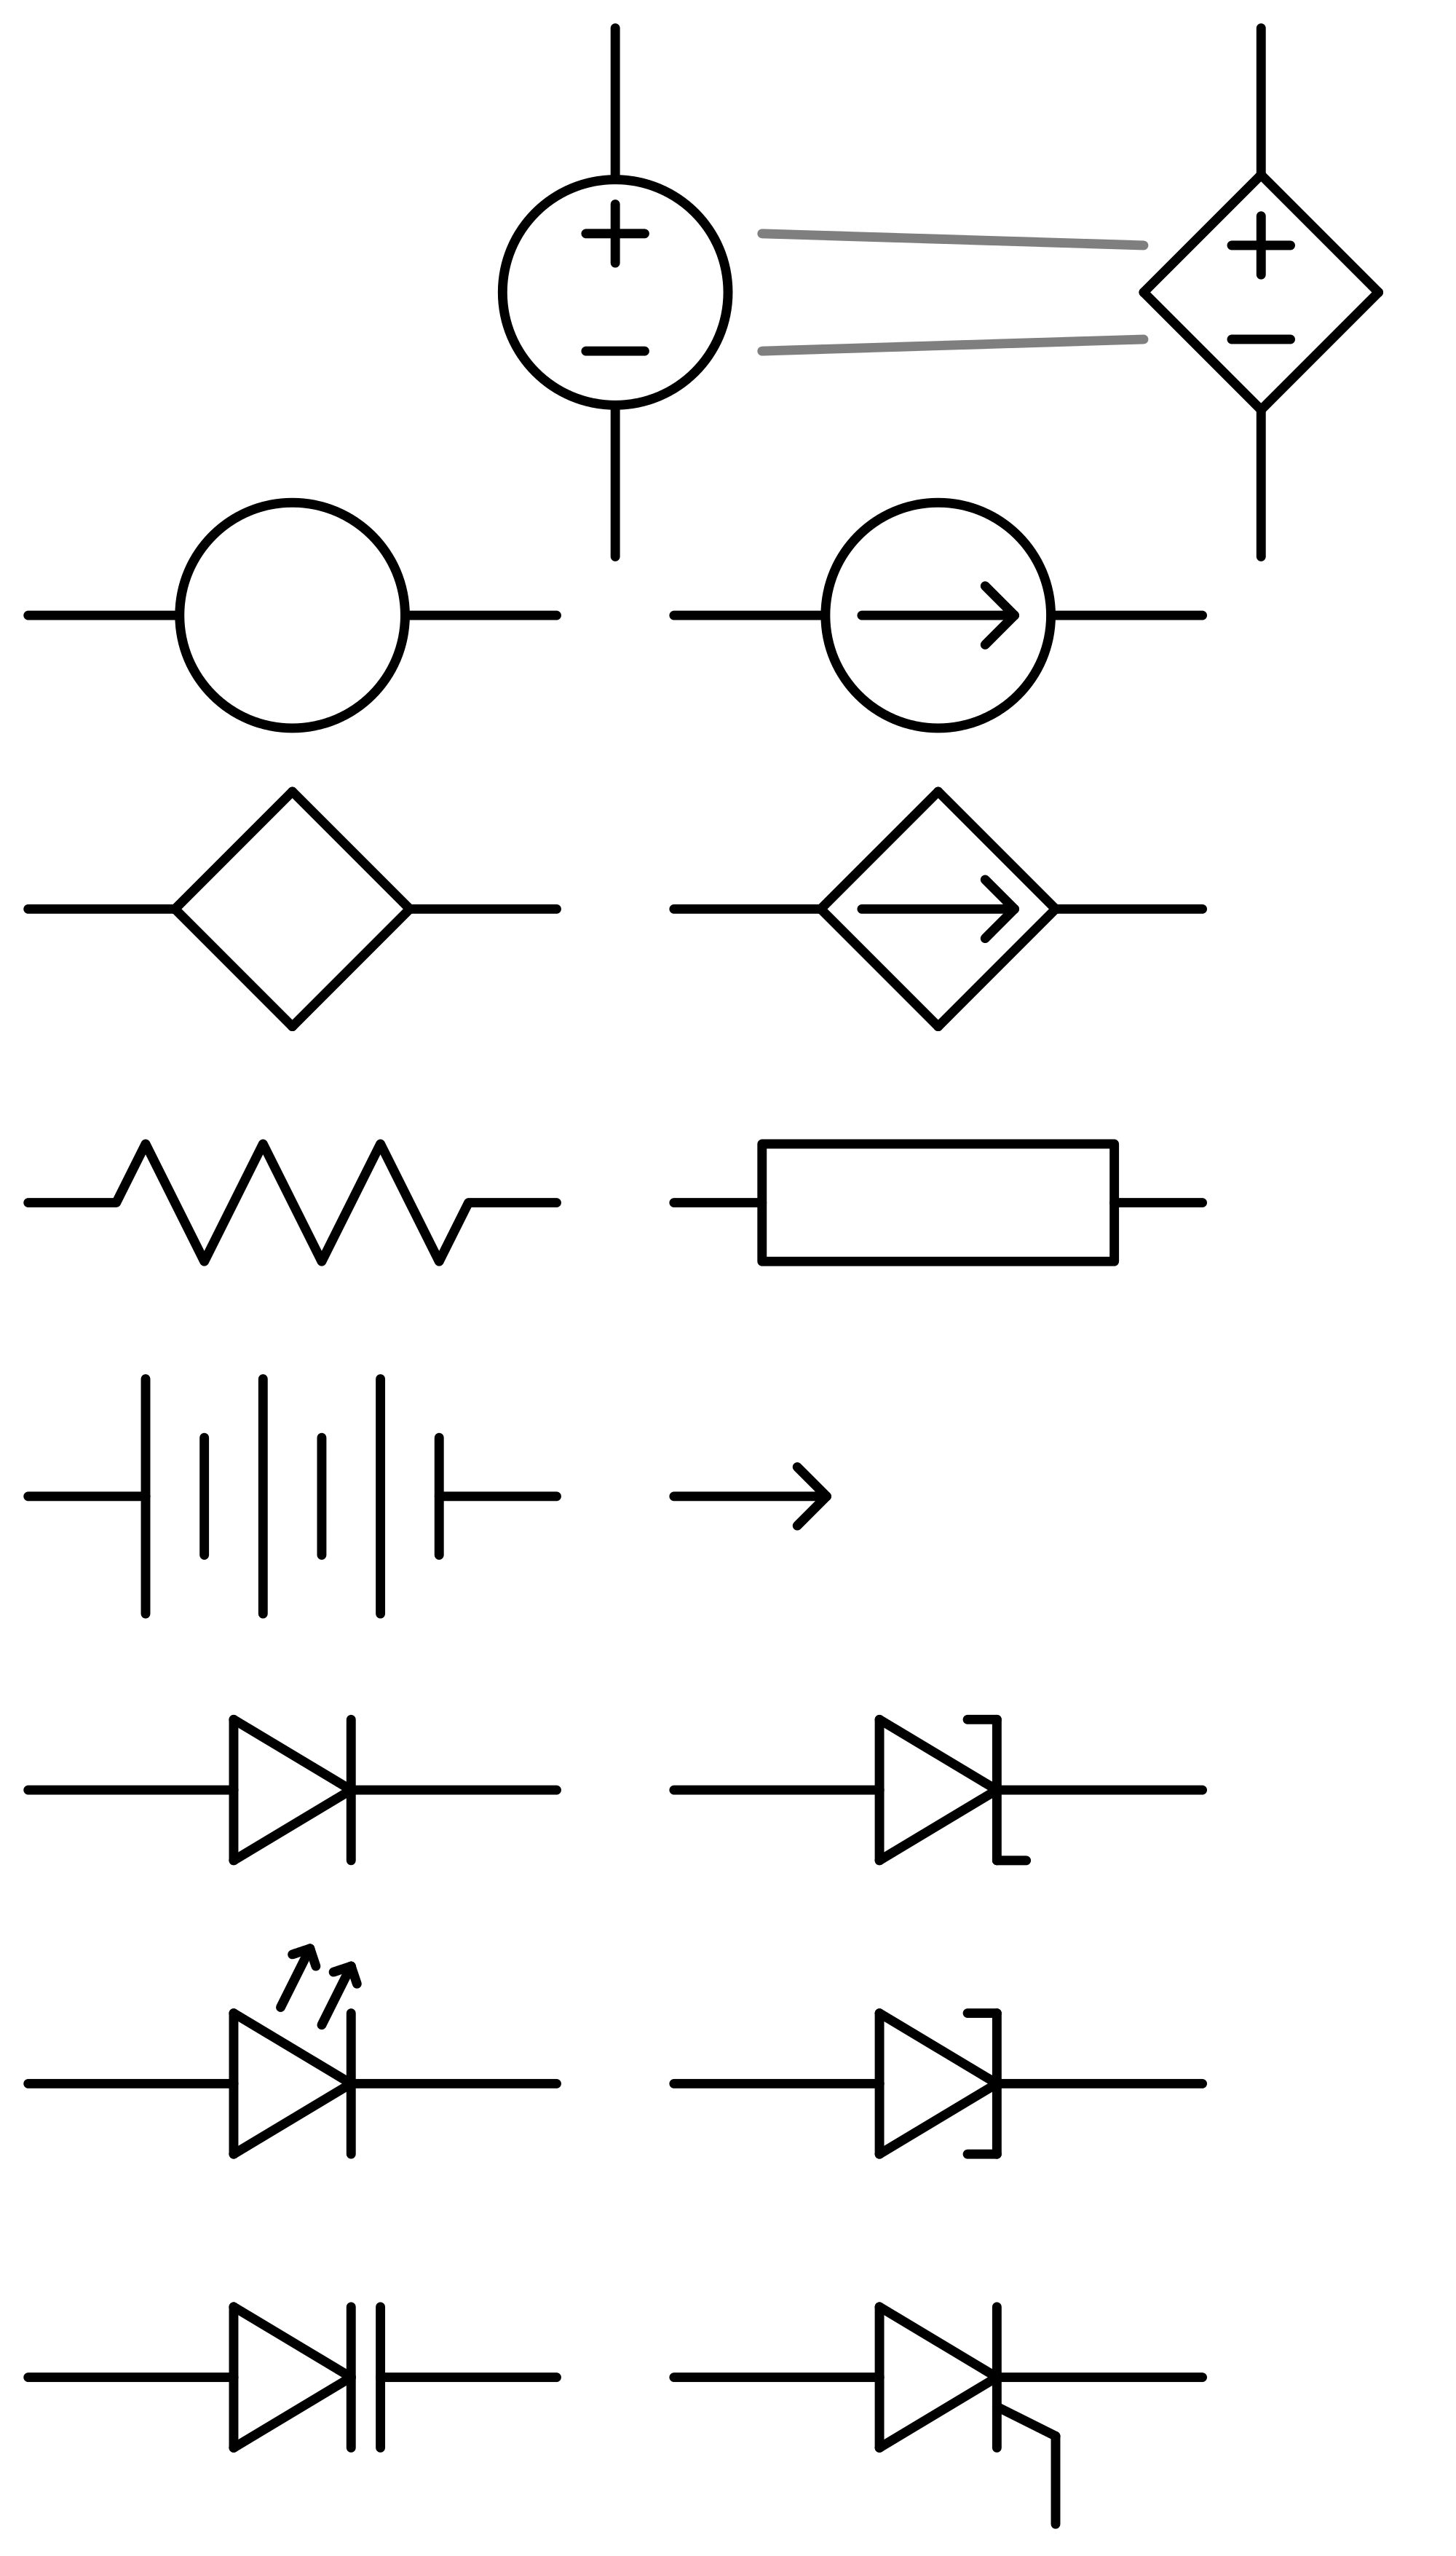 Svg symbols circuit. File omegatron electrical px